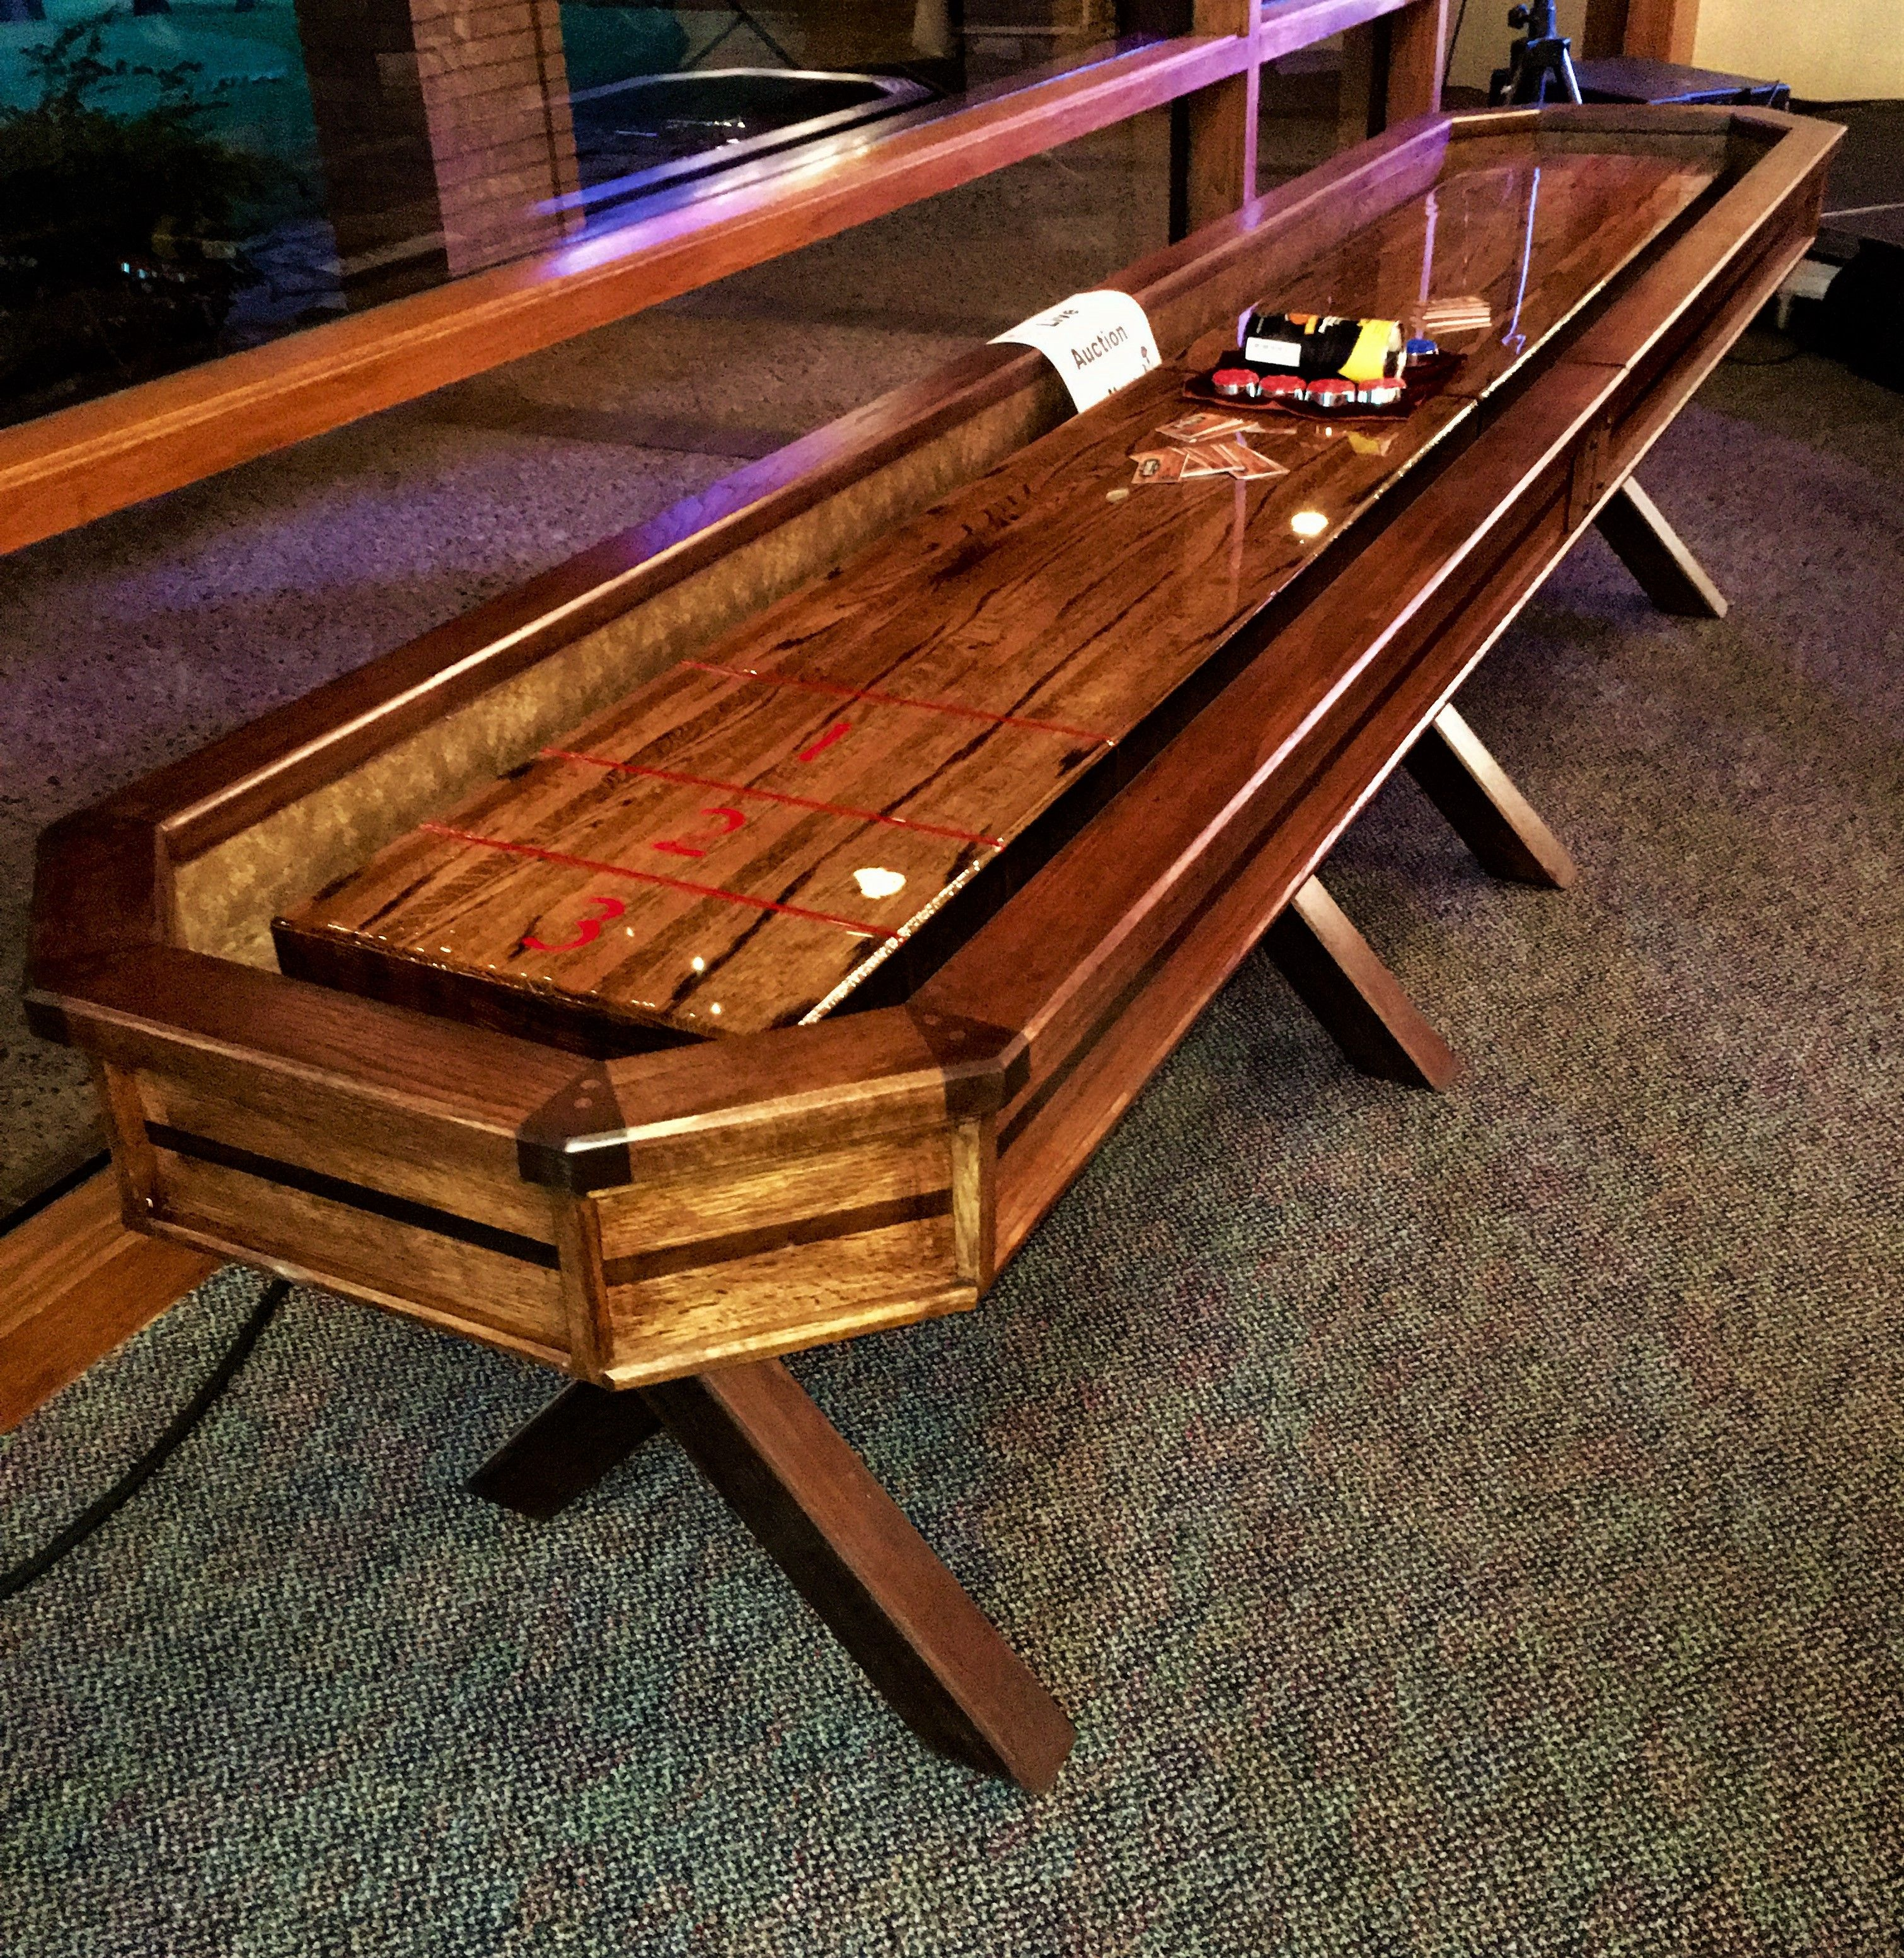 house furniture decor your lighting table for inside sale shuffleboard homemade miraculous ft